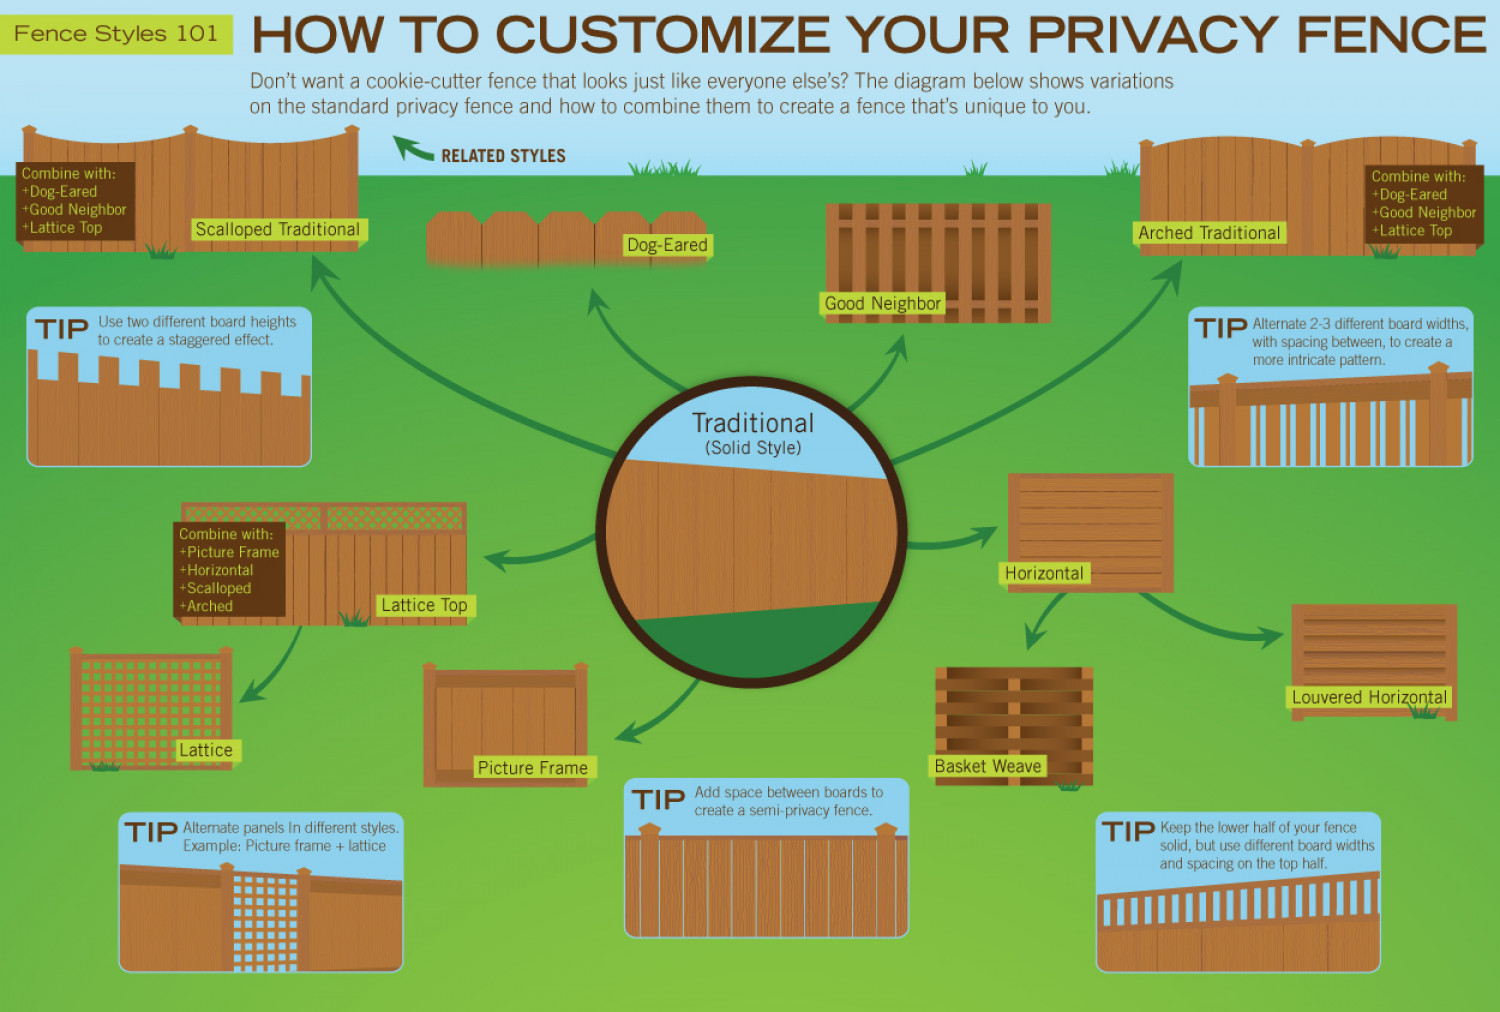 How to Customize Your Privacy Fence Infographic